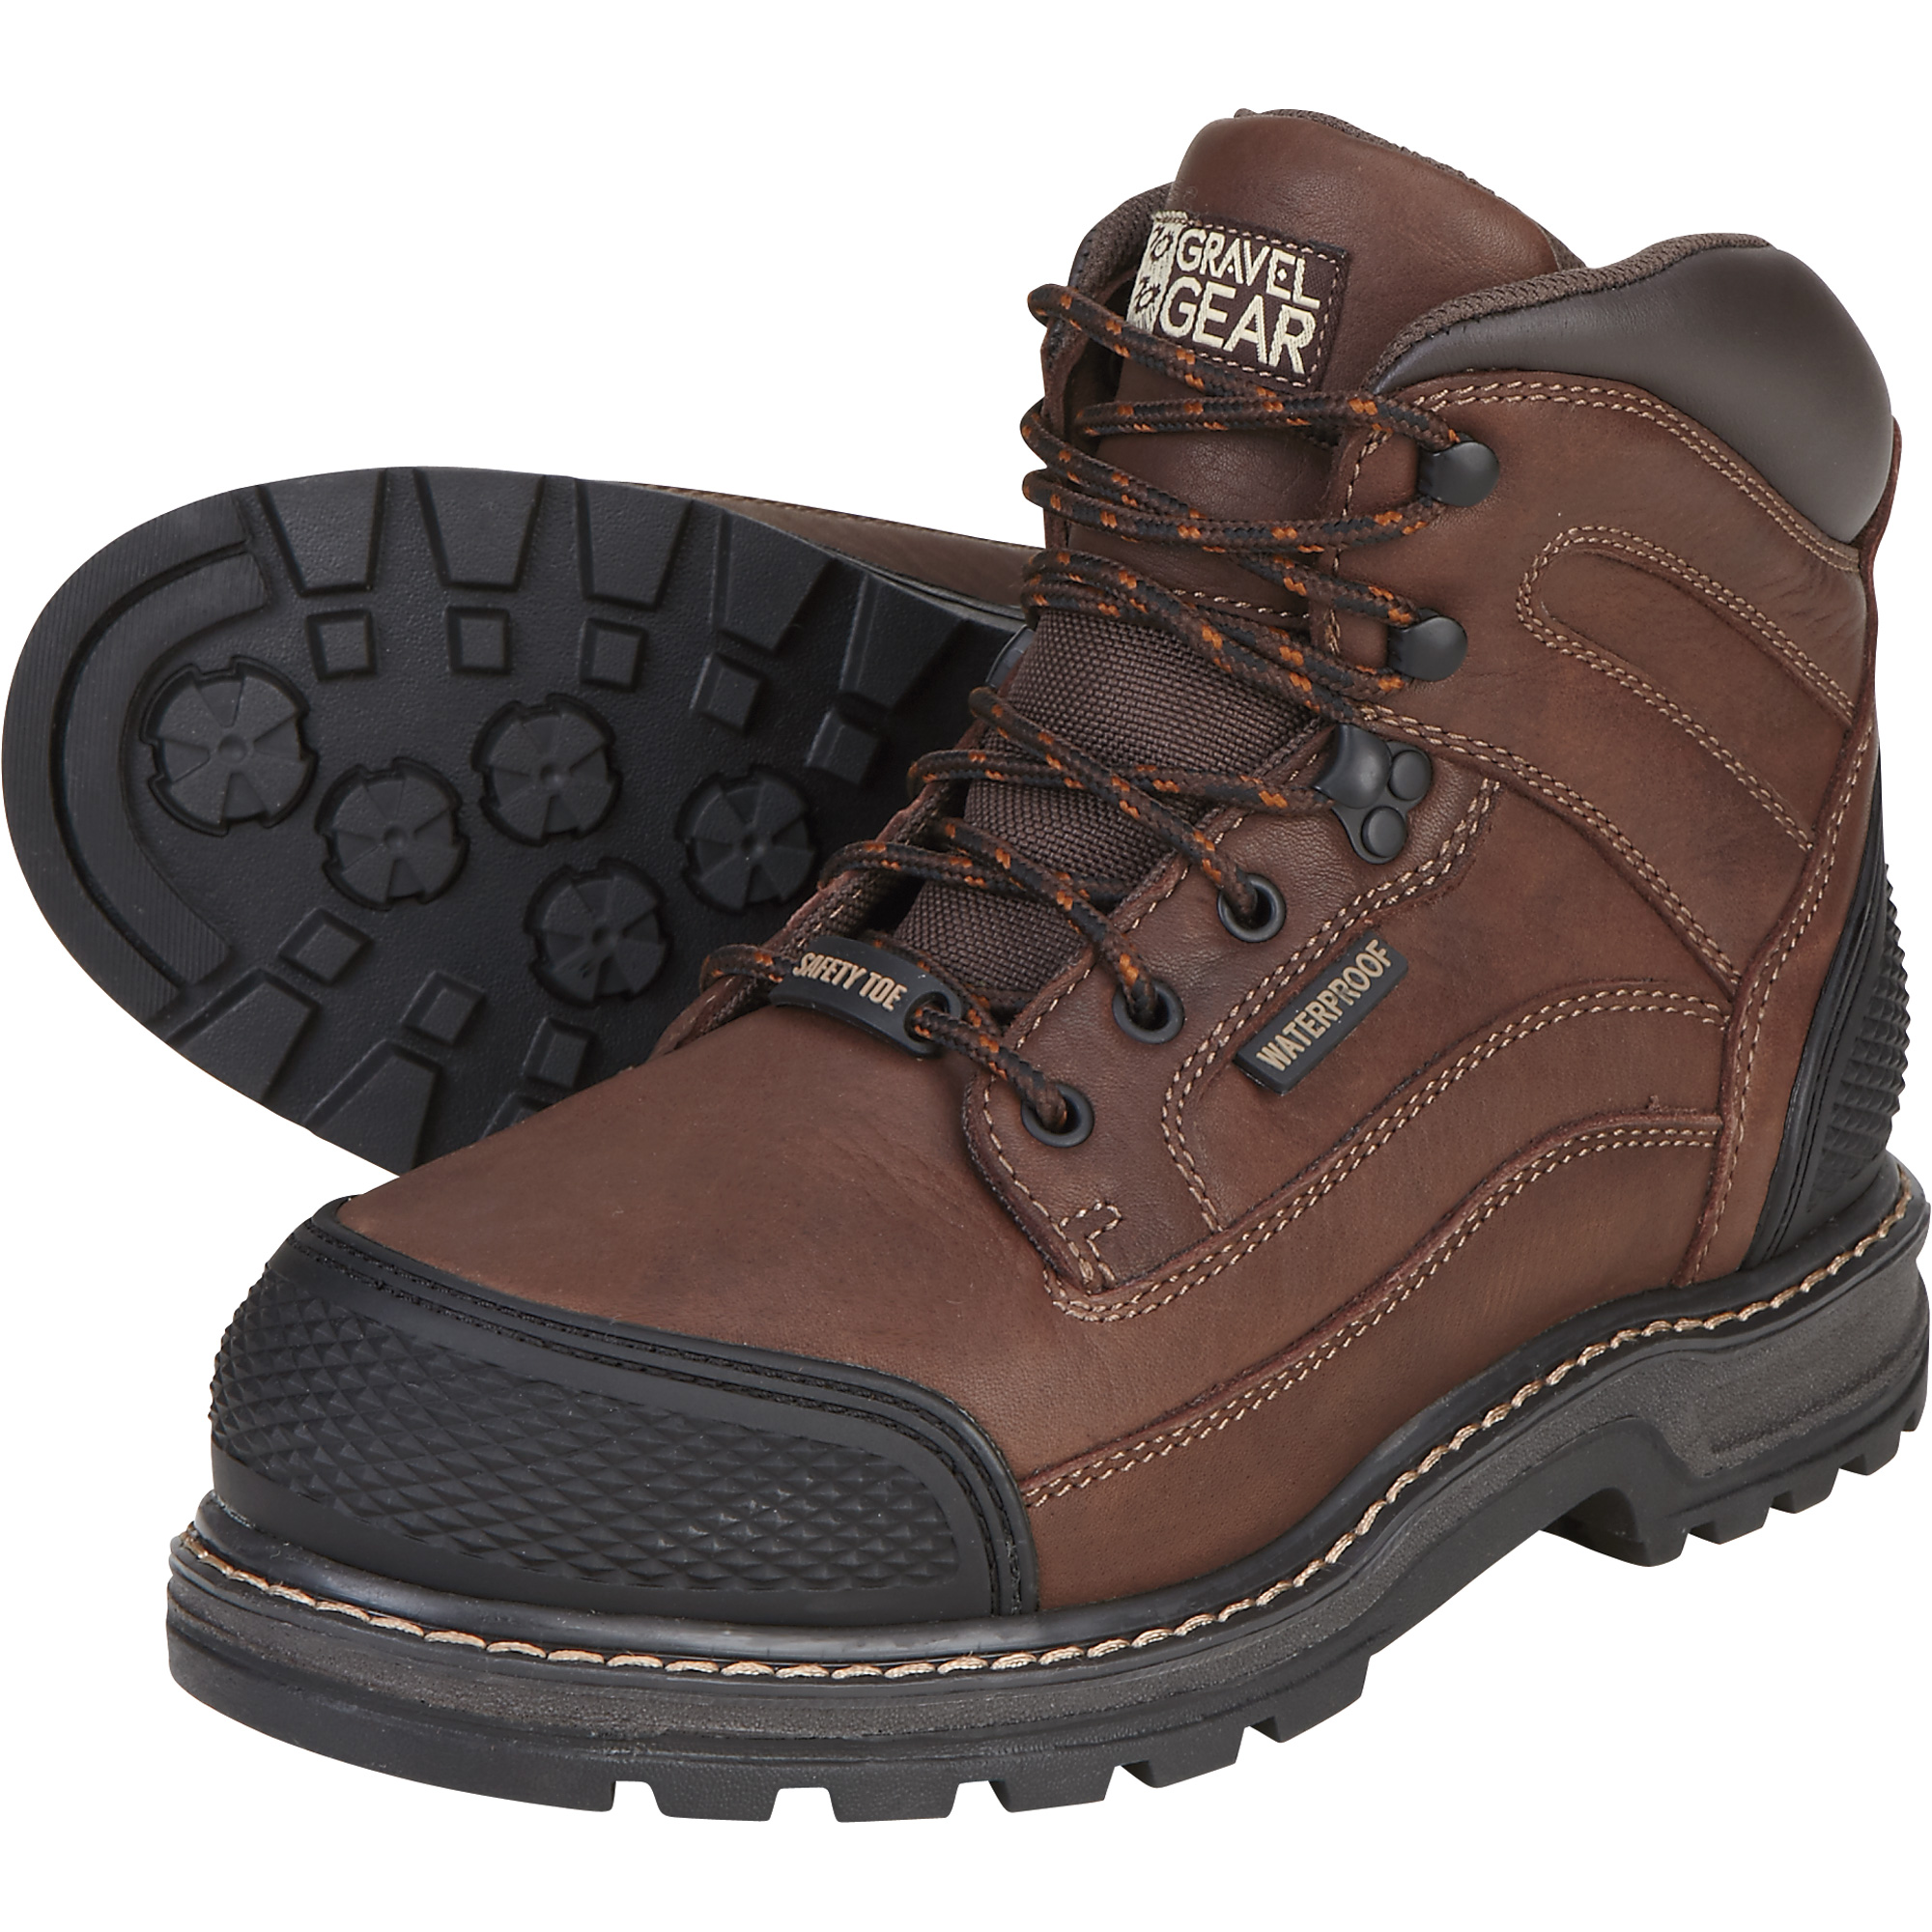 Work Boots Steel Toe 7pfIpbb2